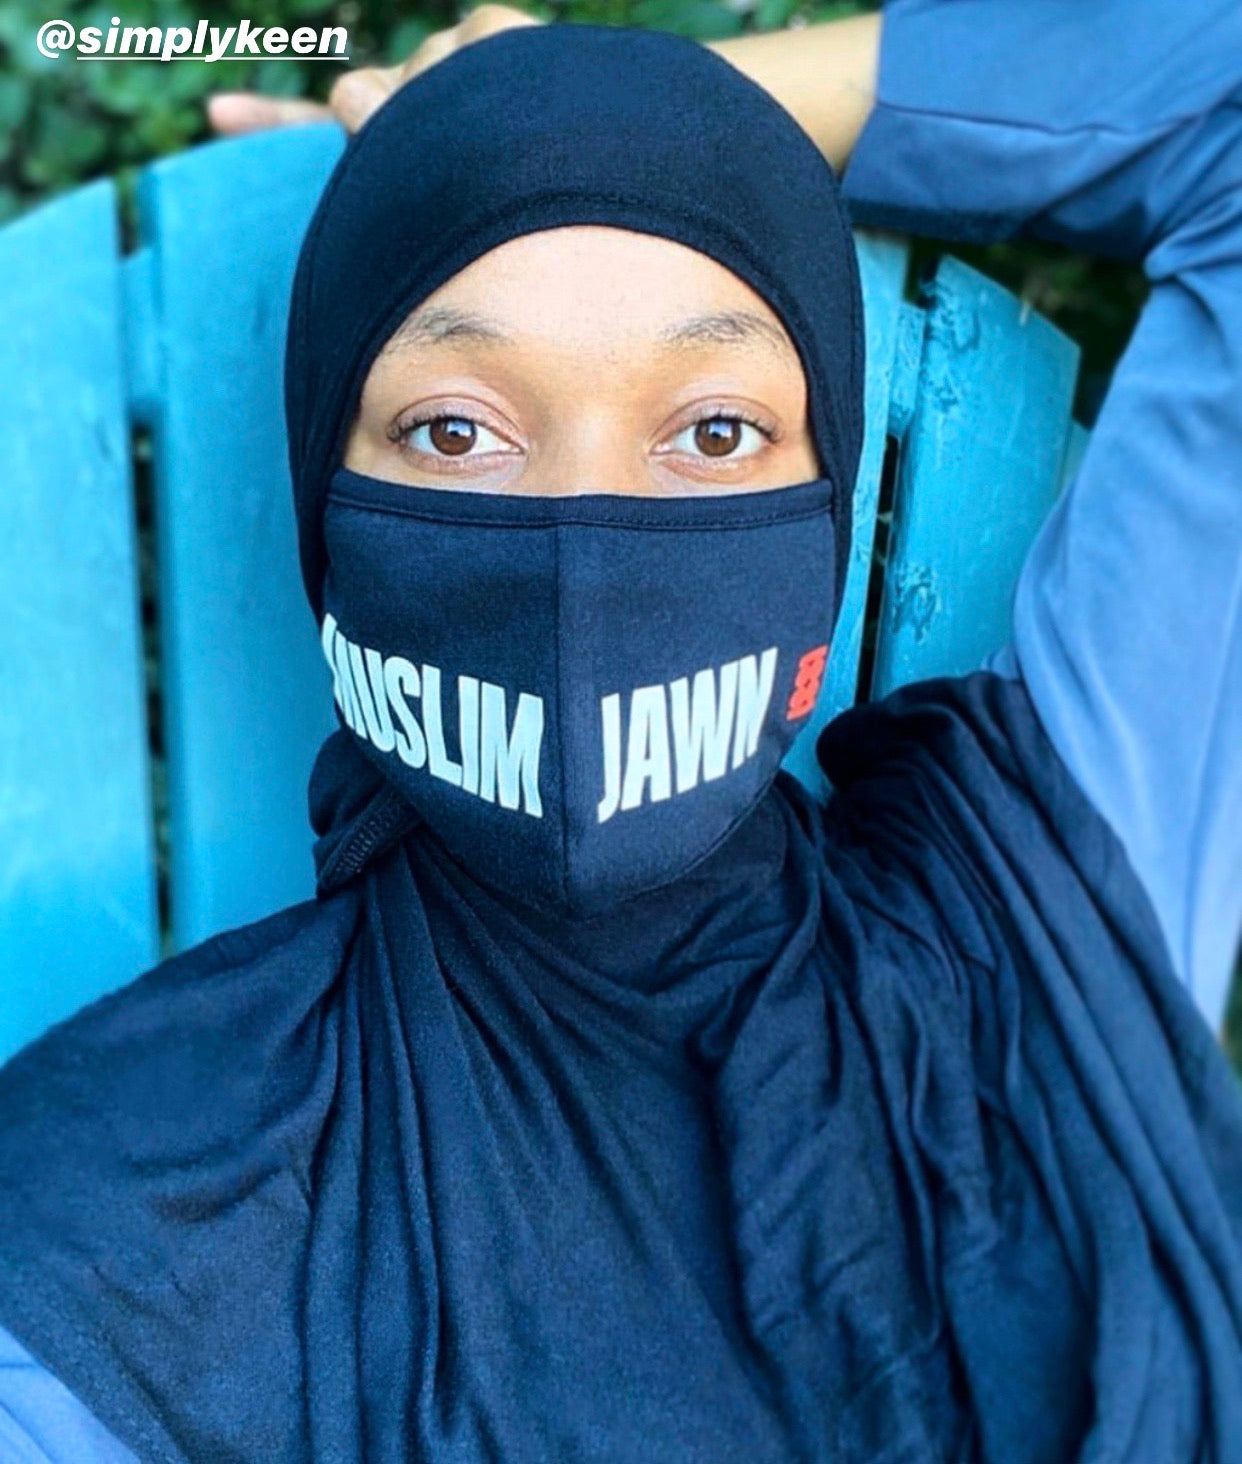 MUSLIM JAWN Face Mask